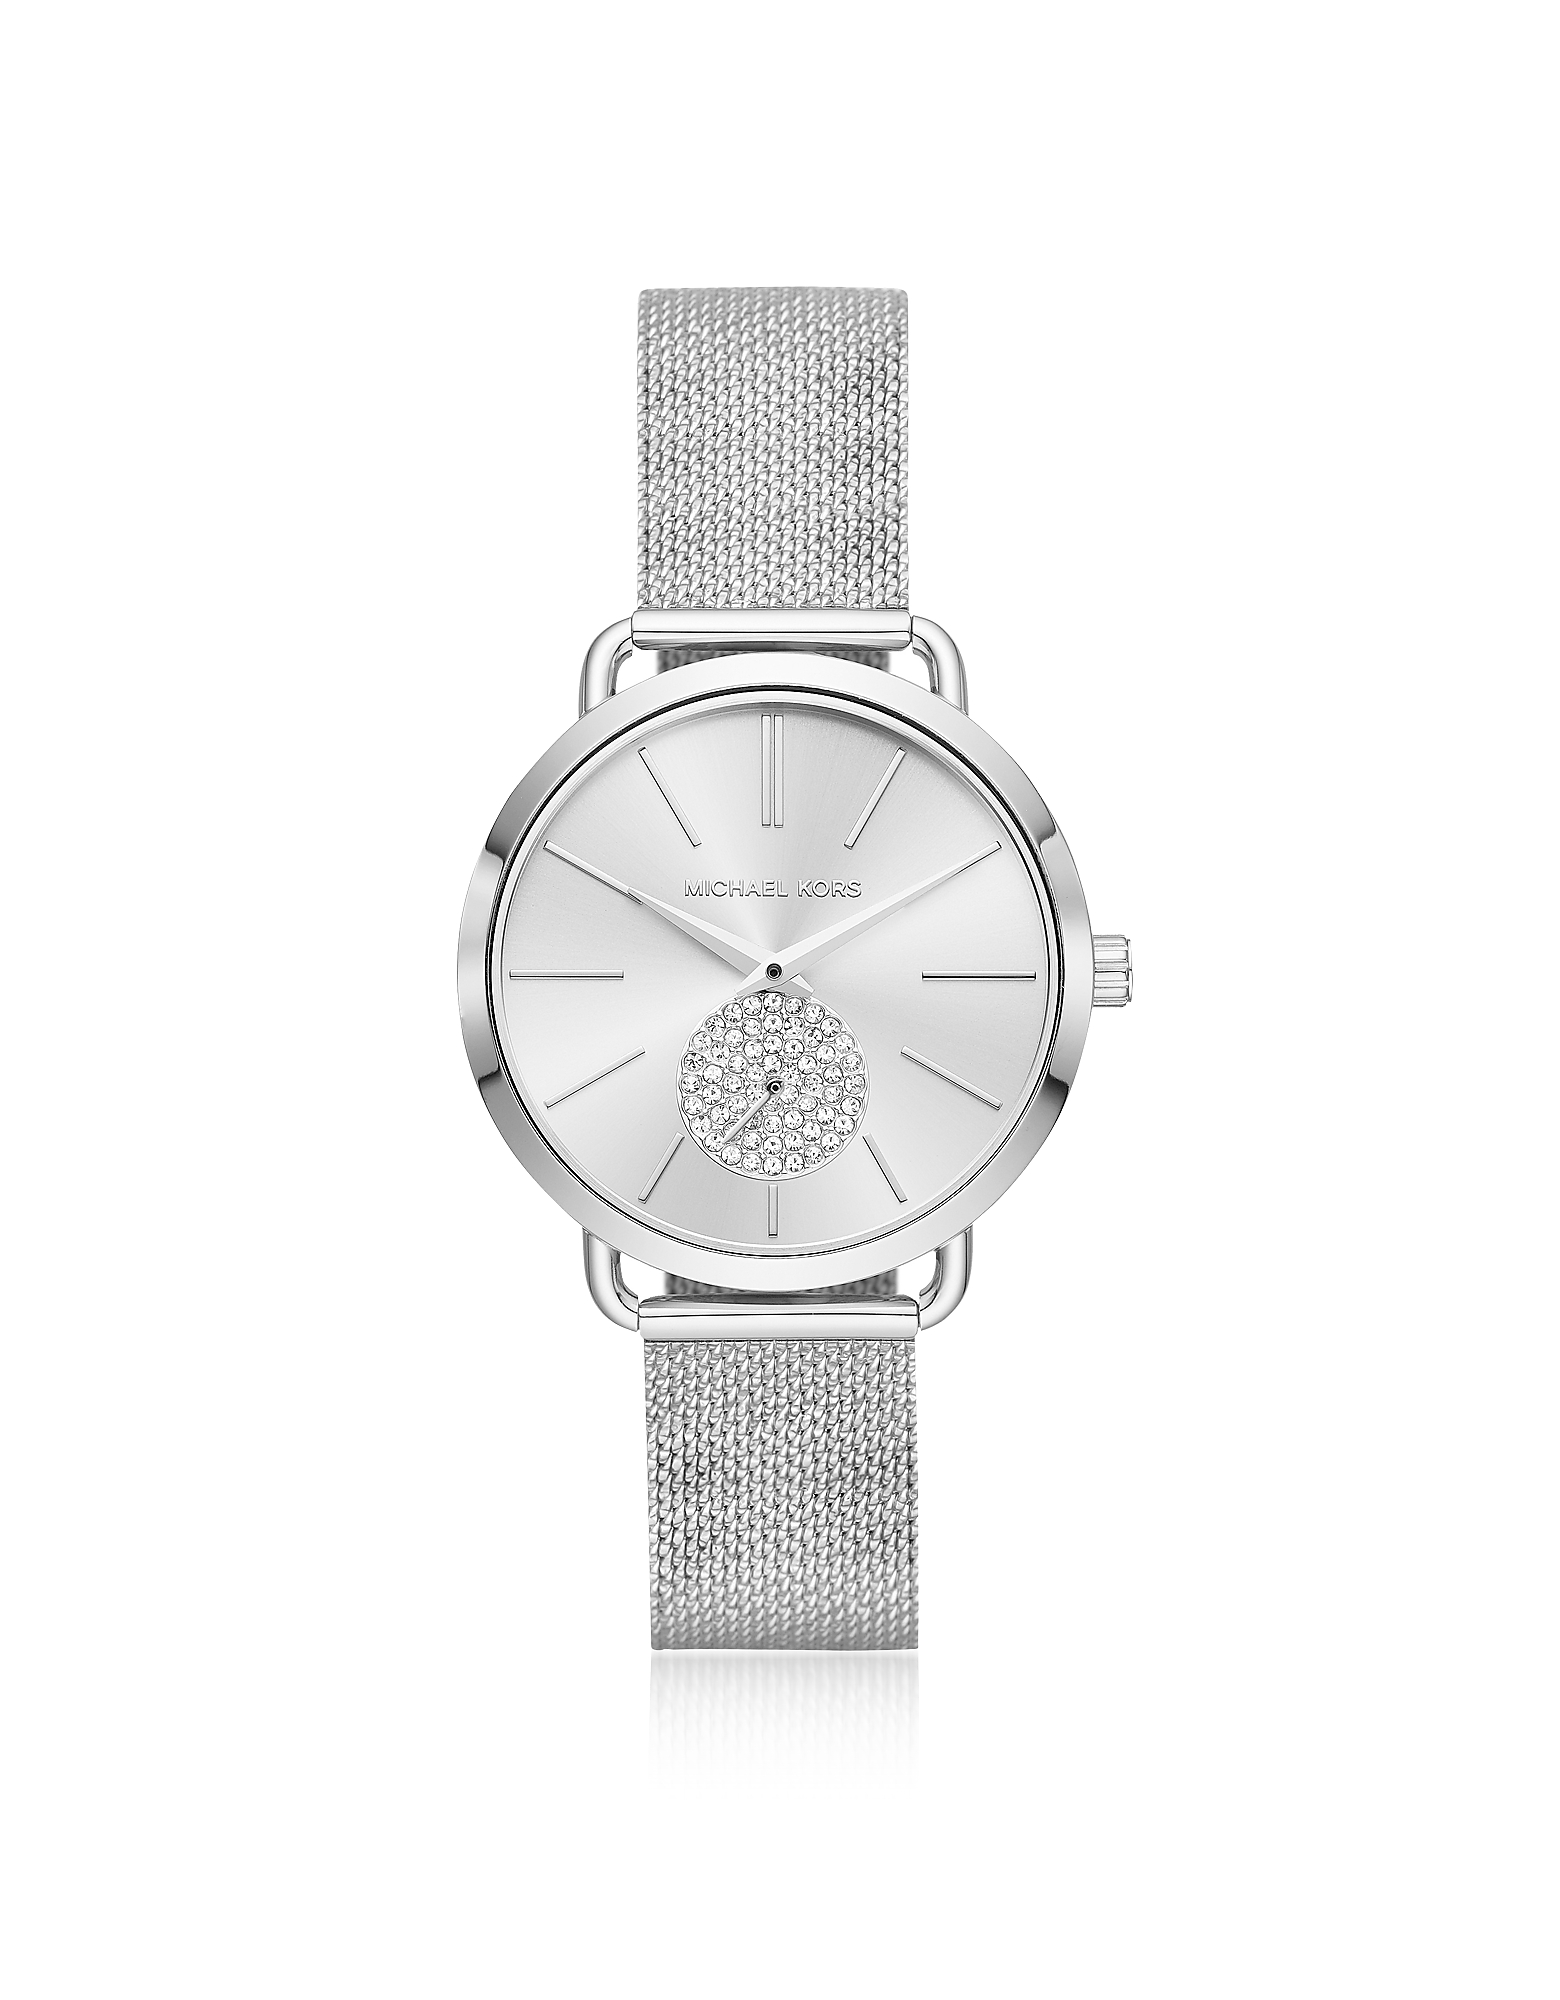 Michael Kors Ladies' Portia Stainless-Steel Watch